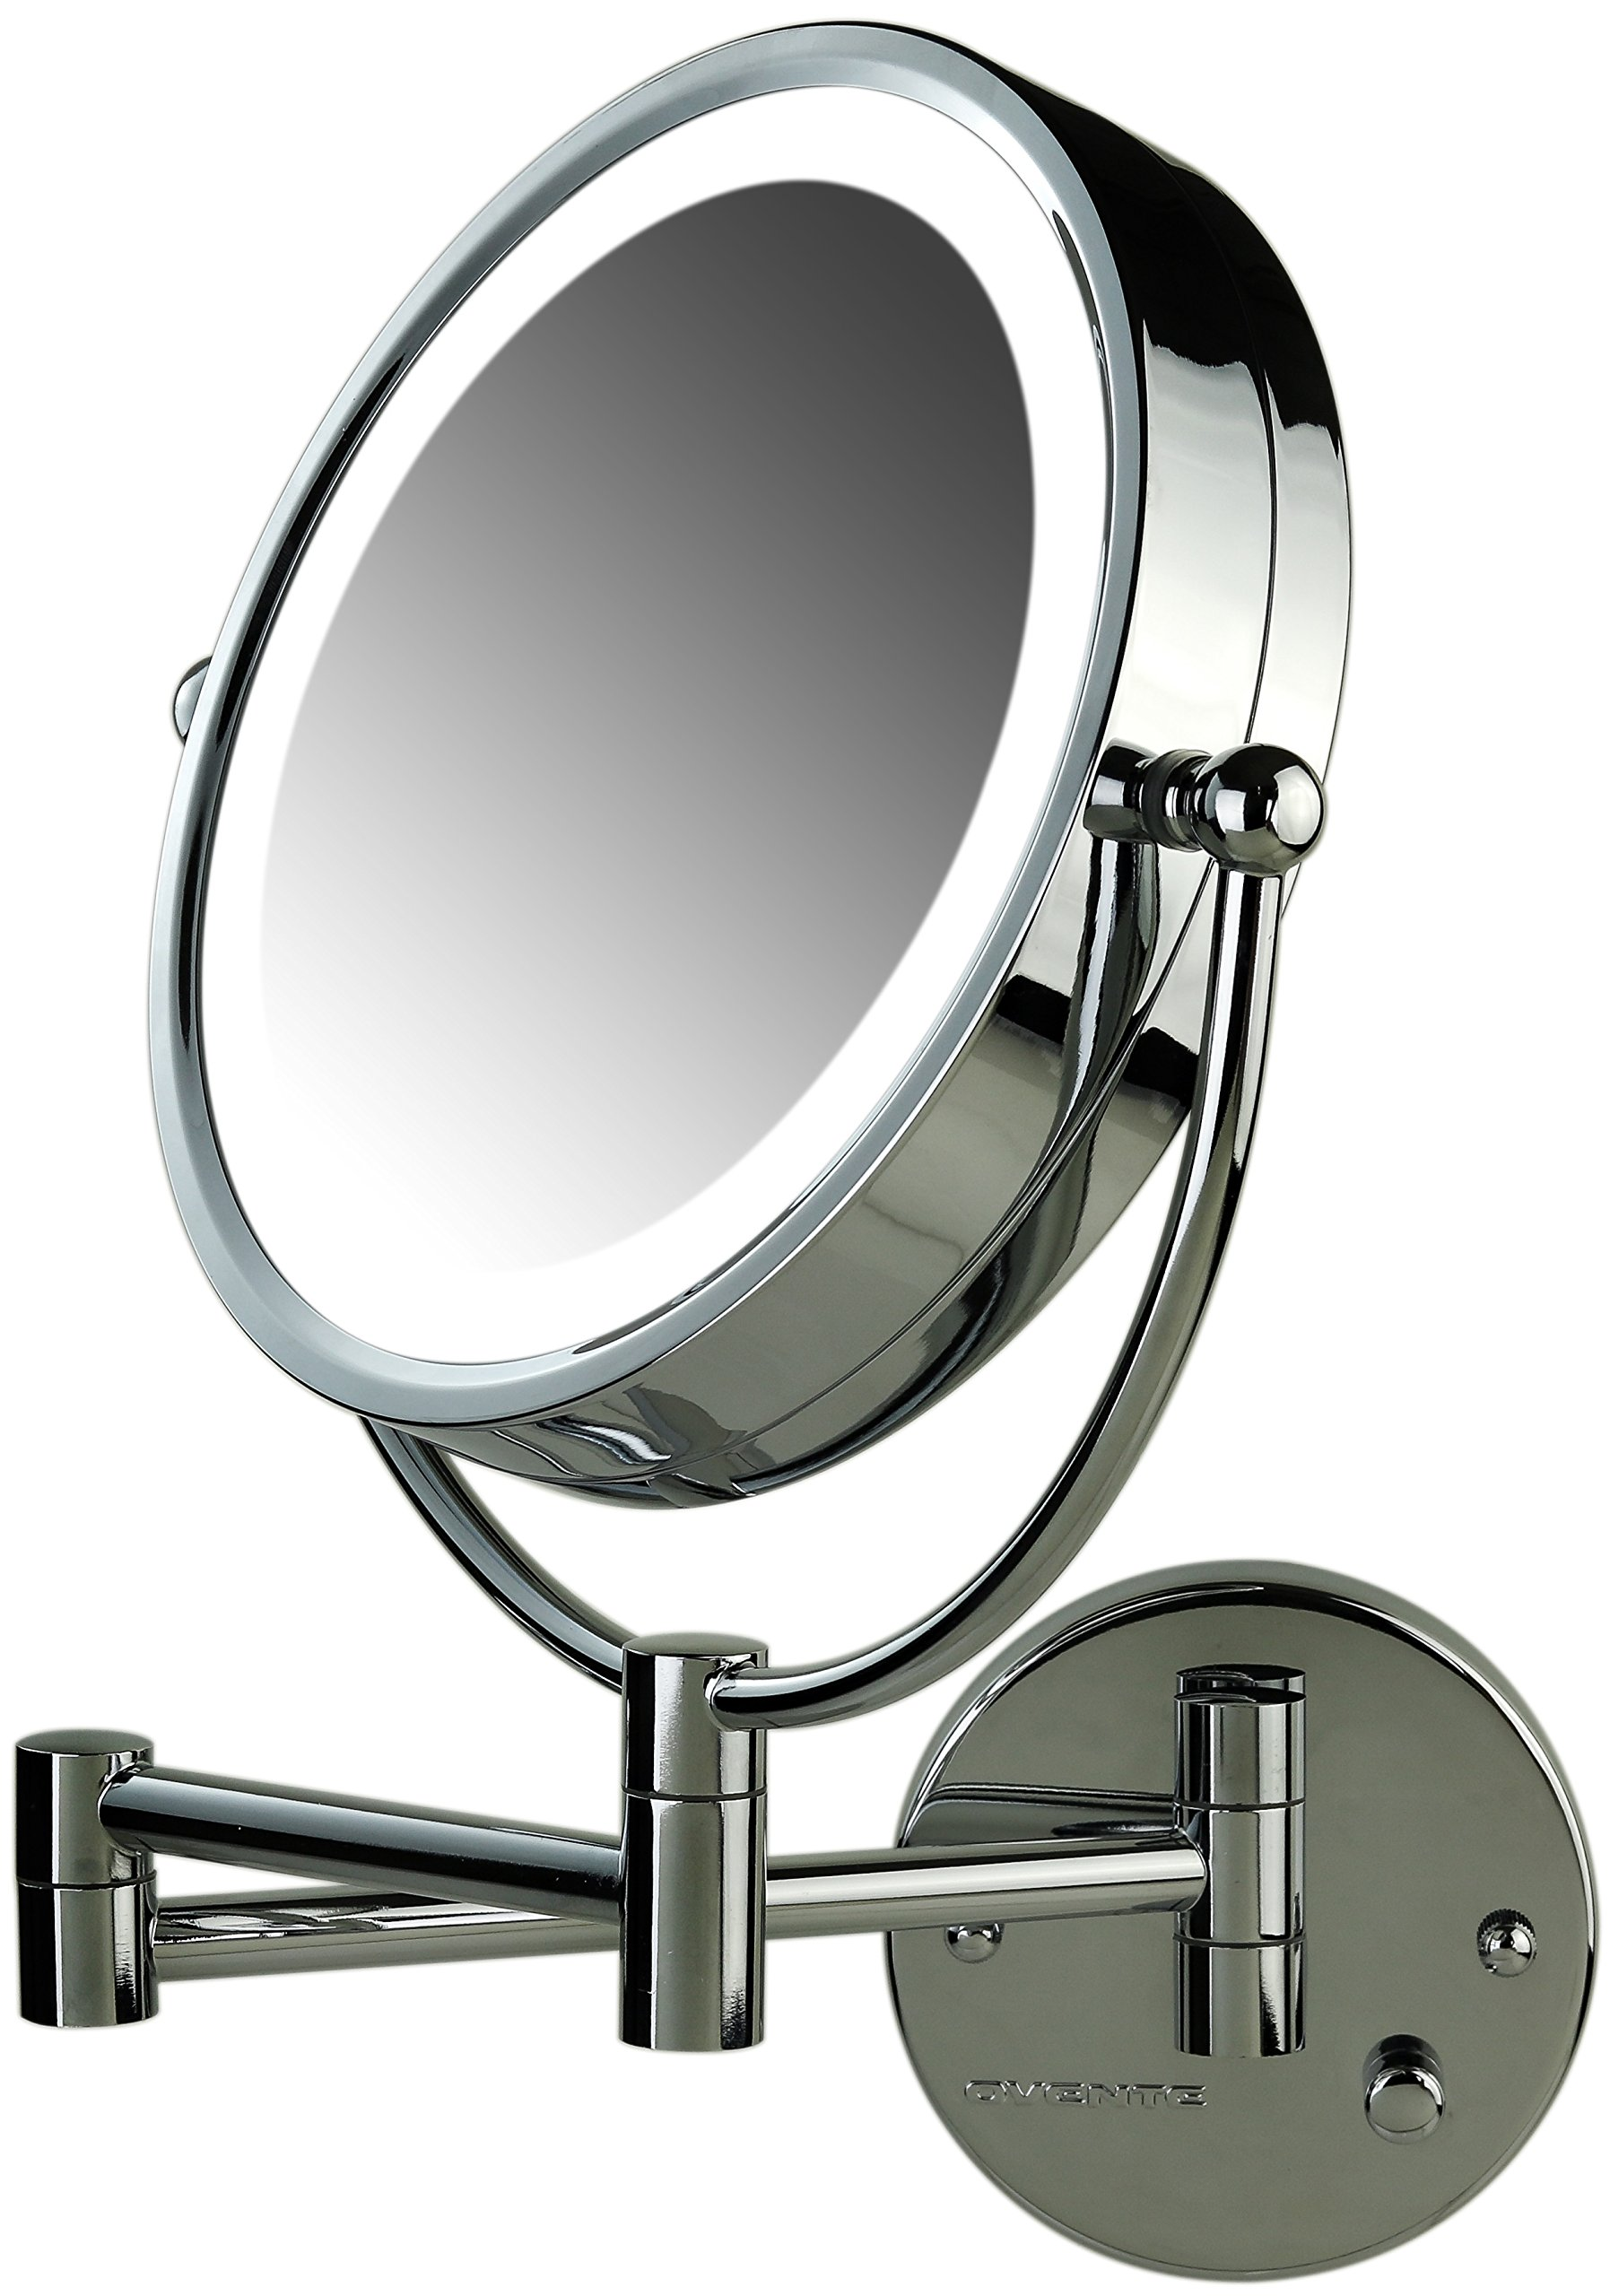 Ovente Lighted Wall Mount Mirror, 8.5 Inch, Dual-Sided 1x/7x Magnification, Hardwired Electrical Connection, Natural White LED Lights, 9-Watts, Polished Chrome (MPWD3185CH1X7X) by Ovente (Image #2)